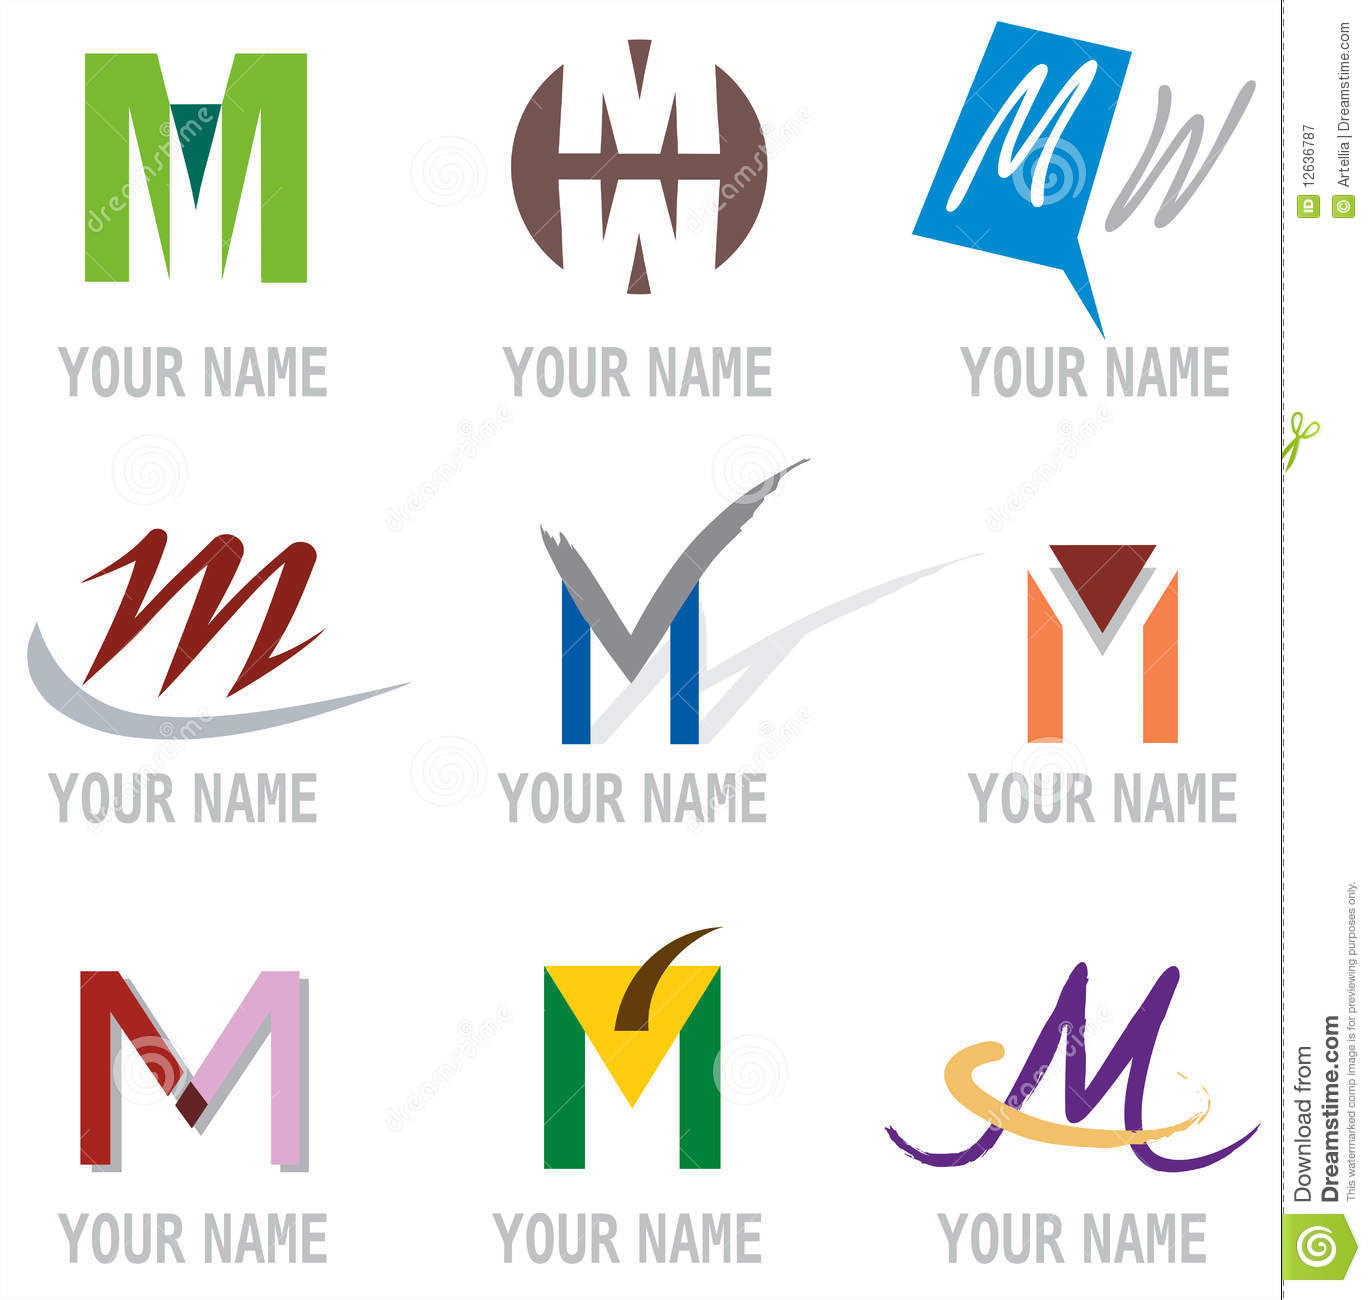 Letter m png, vectors, psd, and clipart for free download | pngtree.